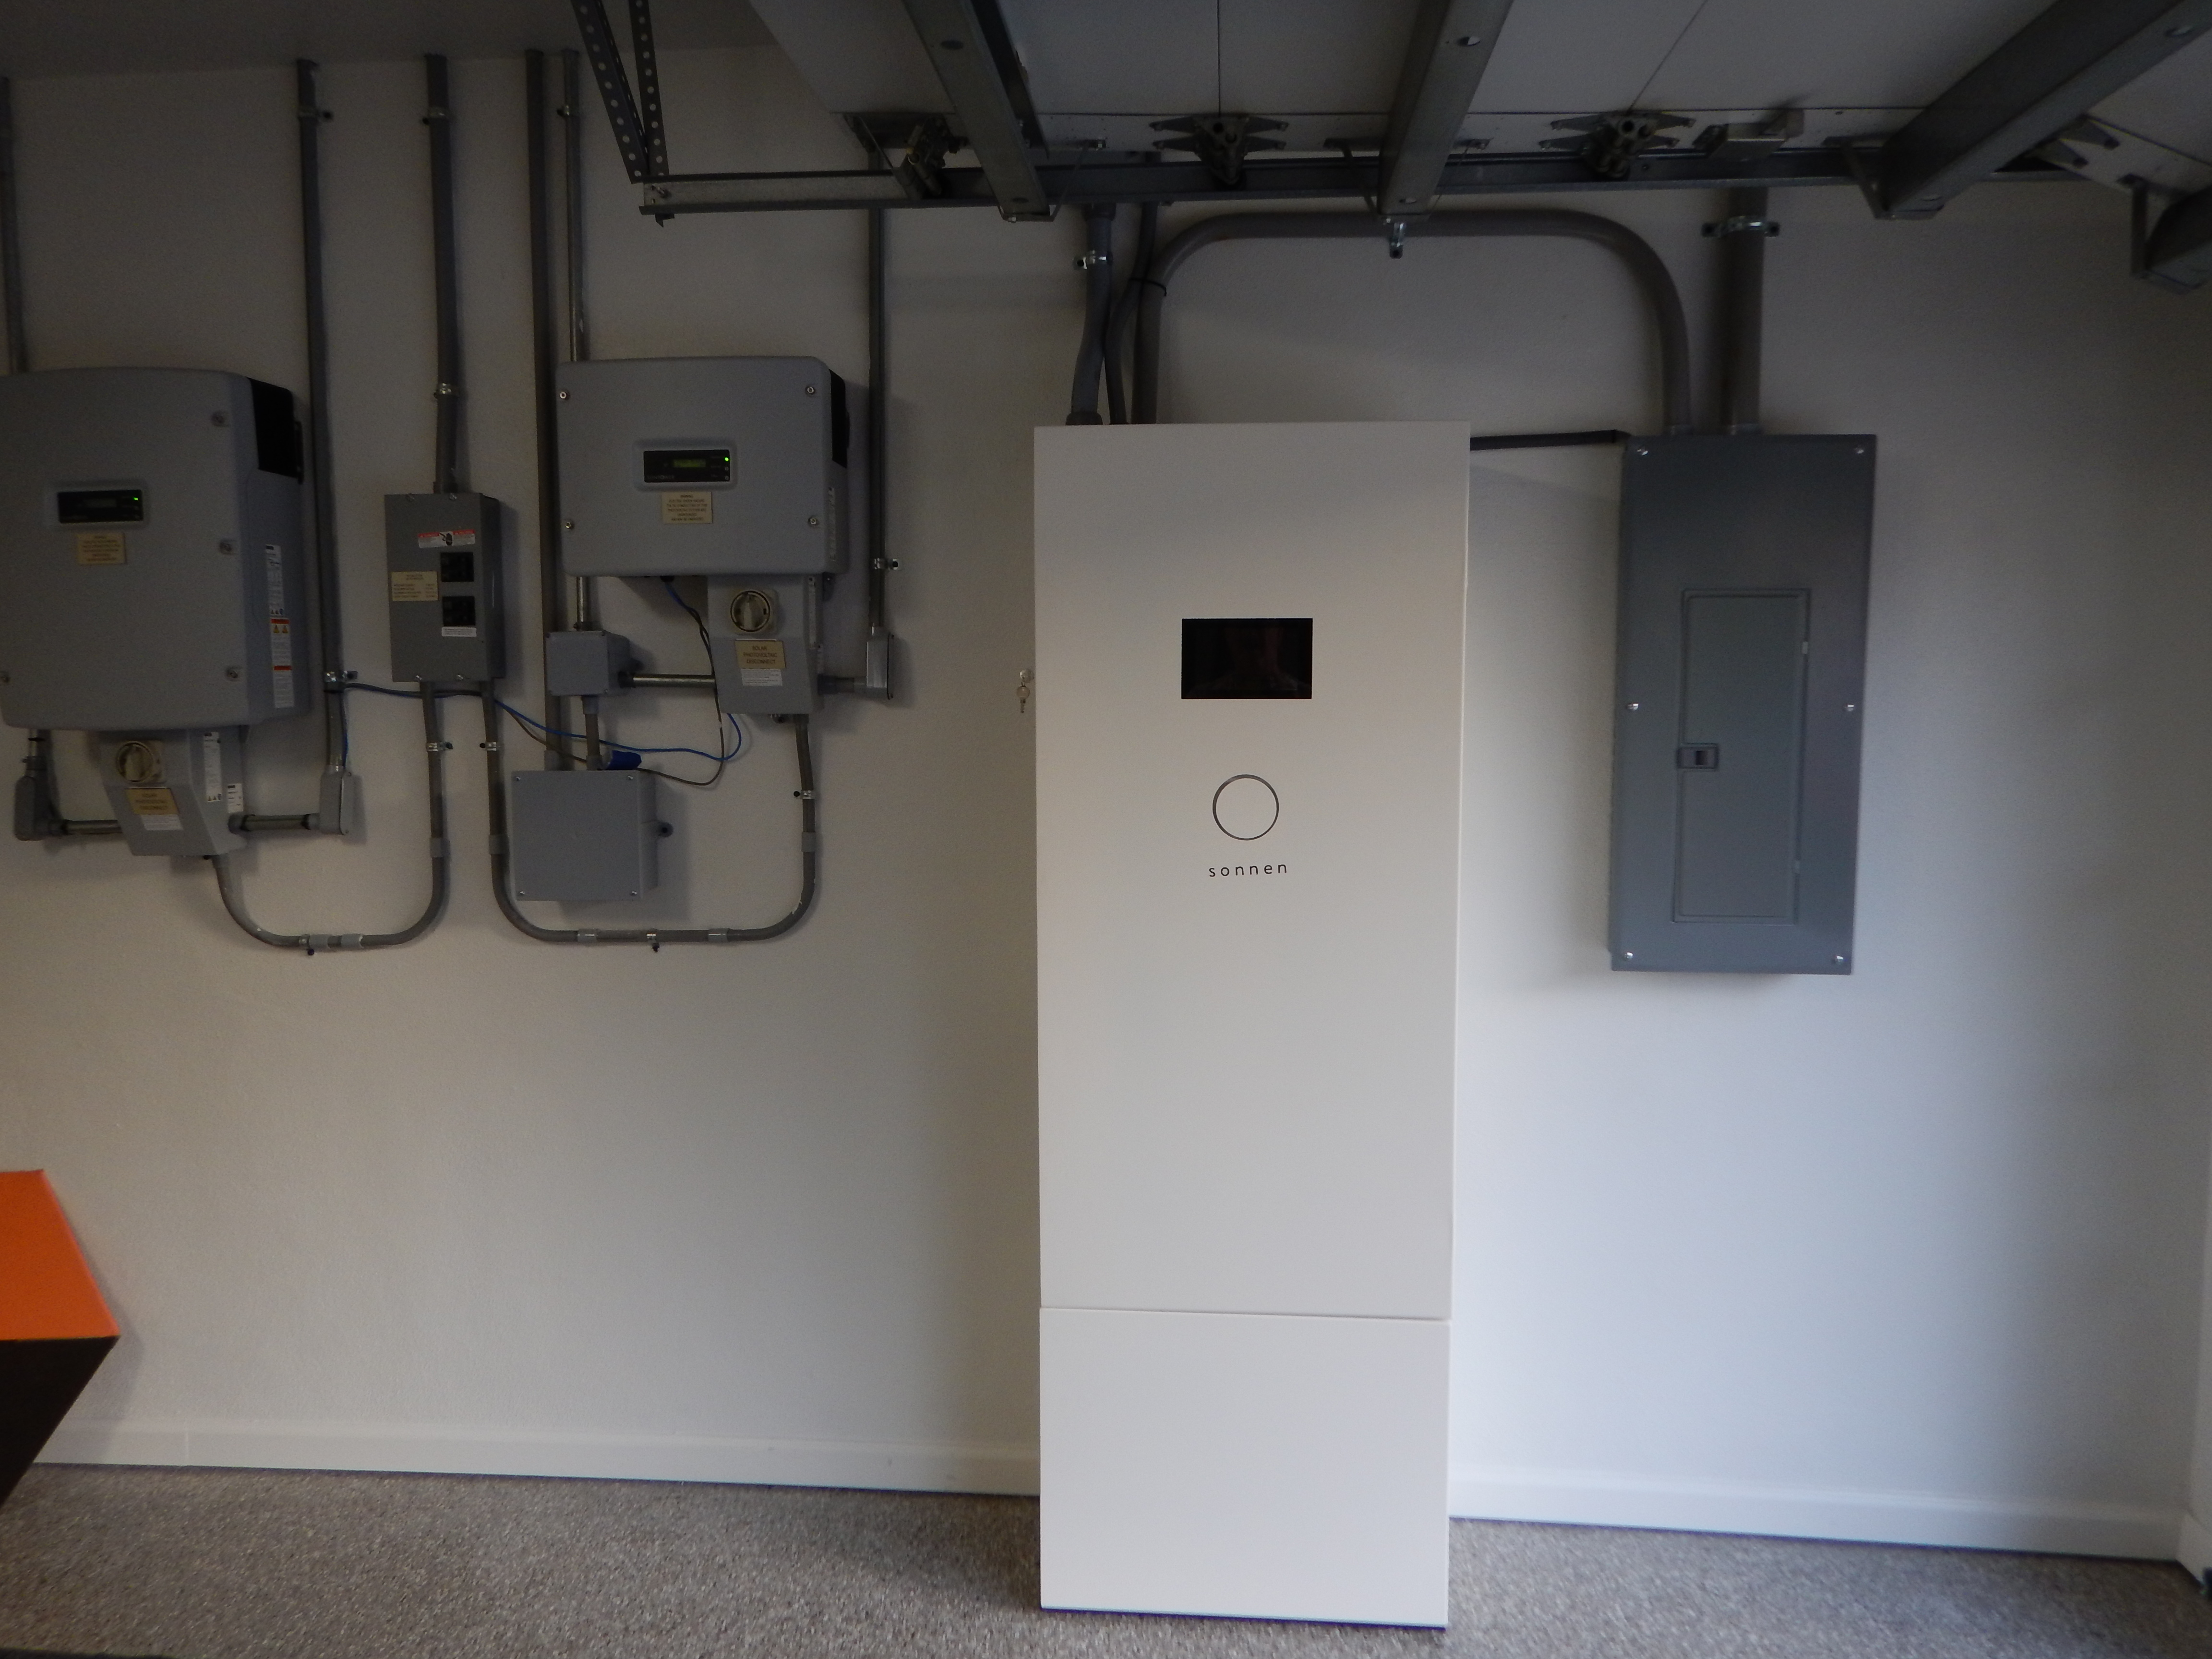 Sonnen battery backup unit and #4 - individual 2kWh Sonnen batteries